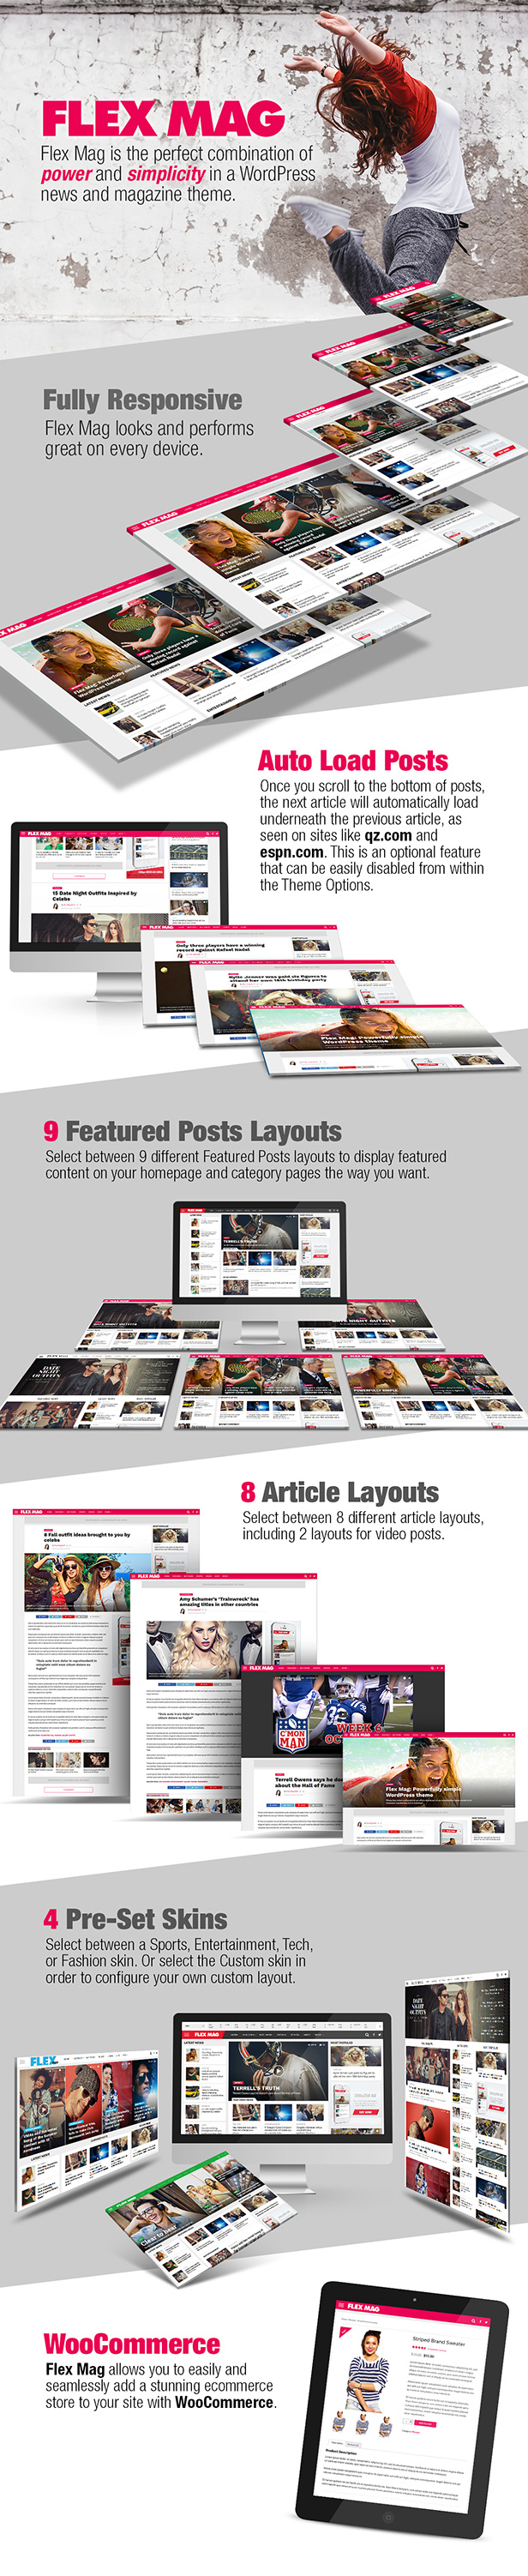 Flex Mag - Responsive WordPress News Theme - 1